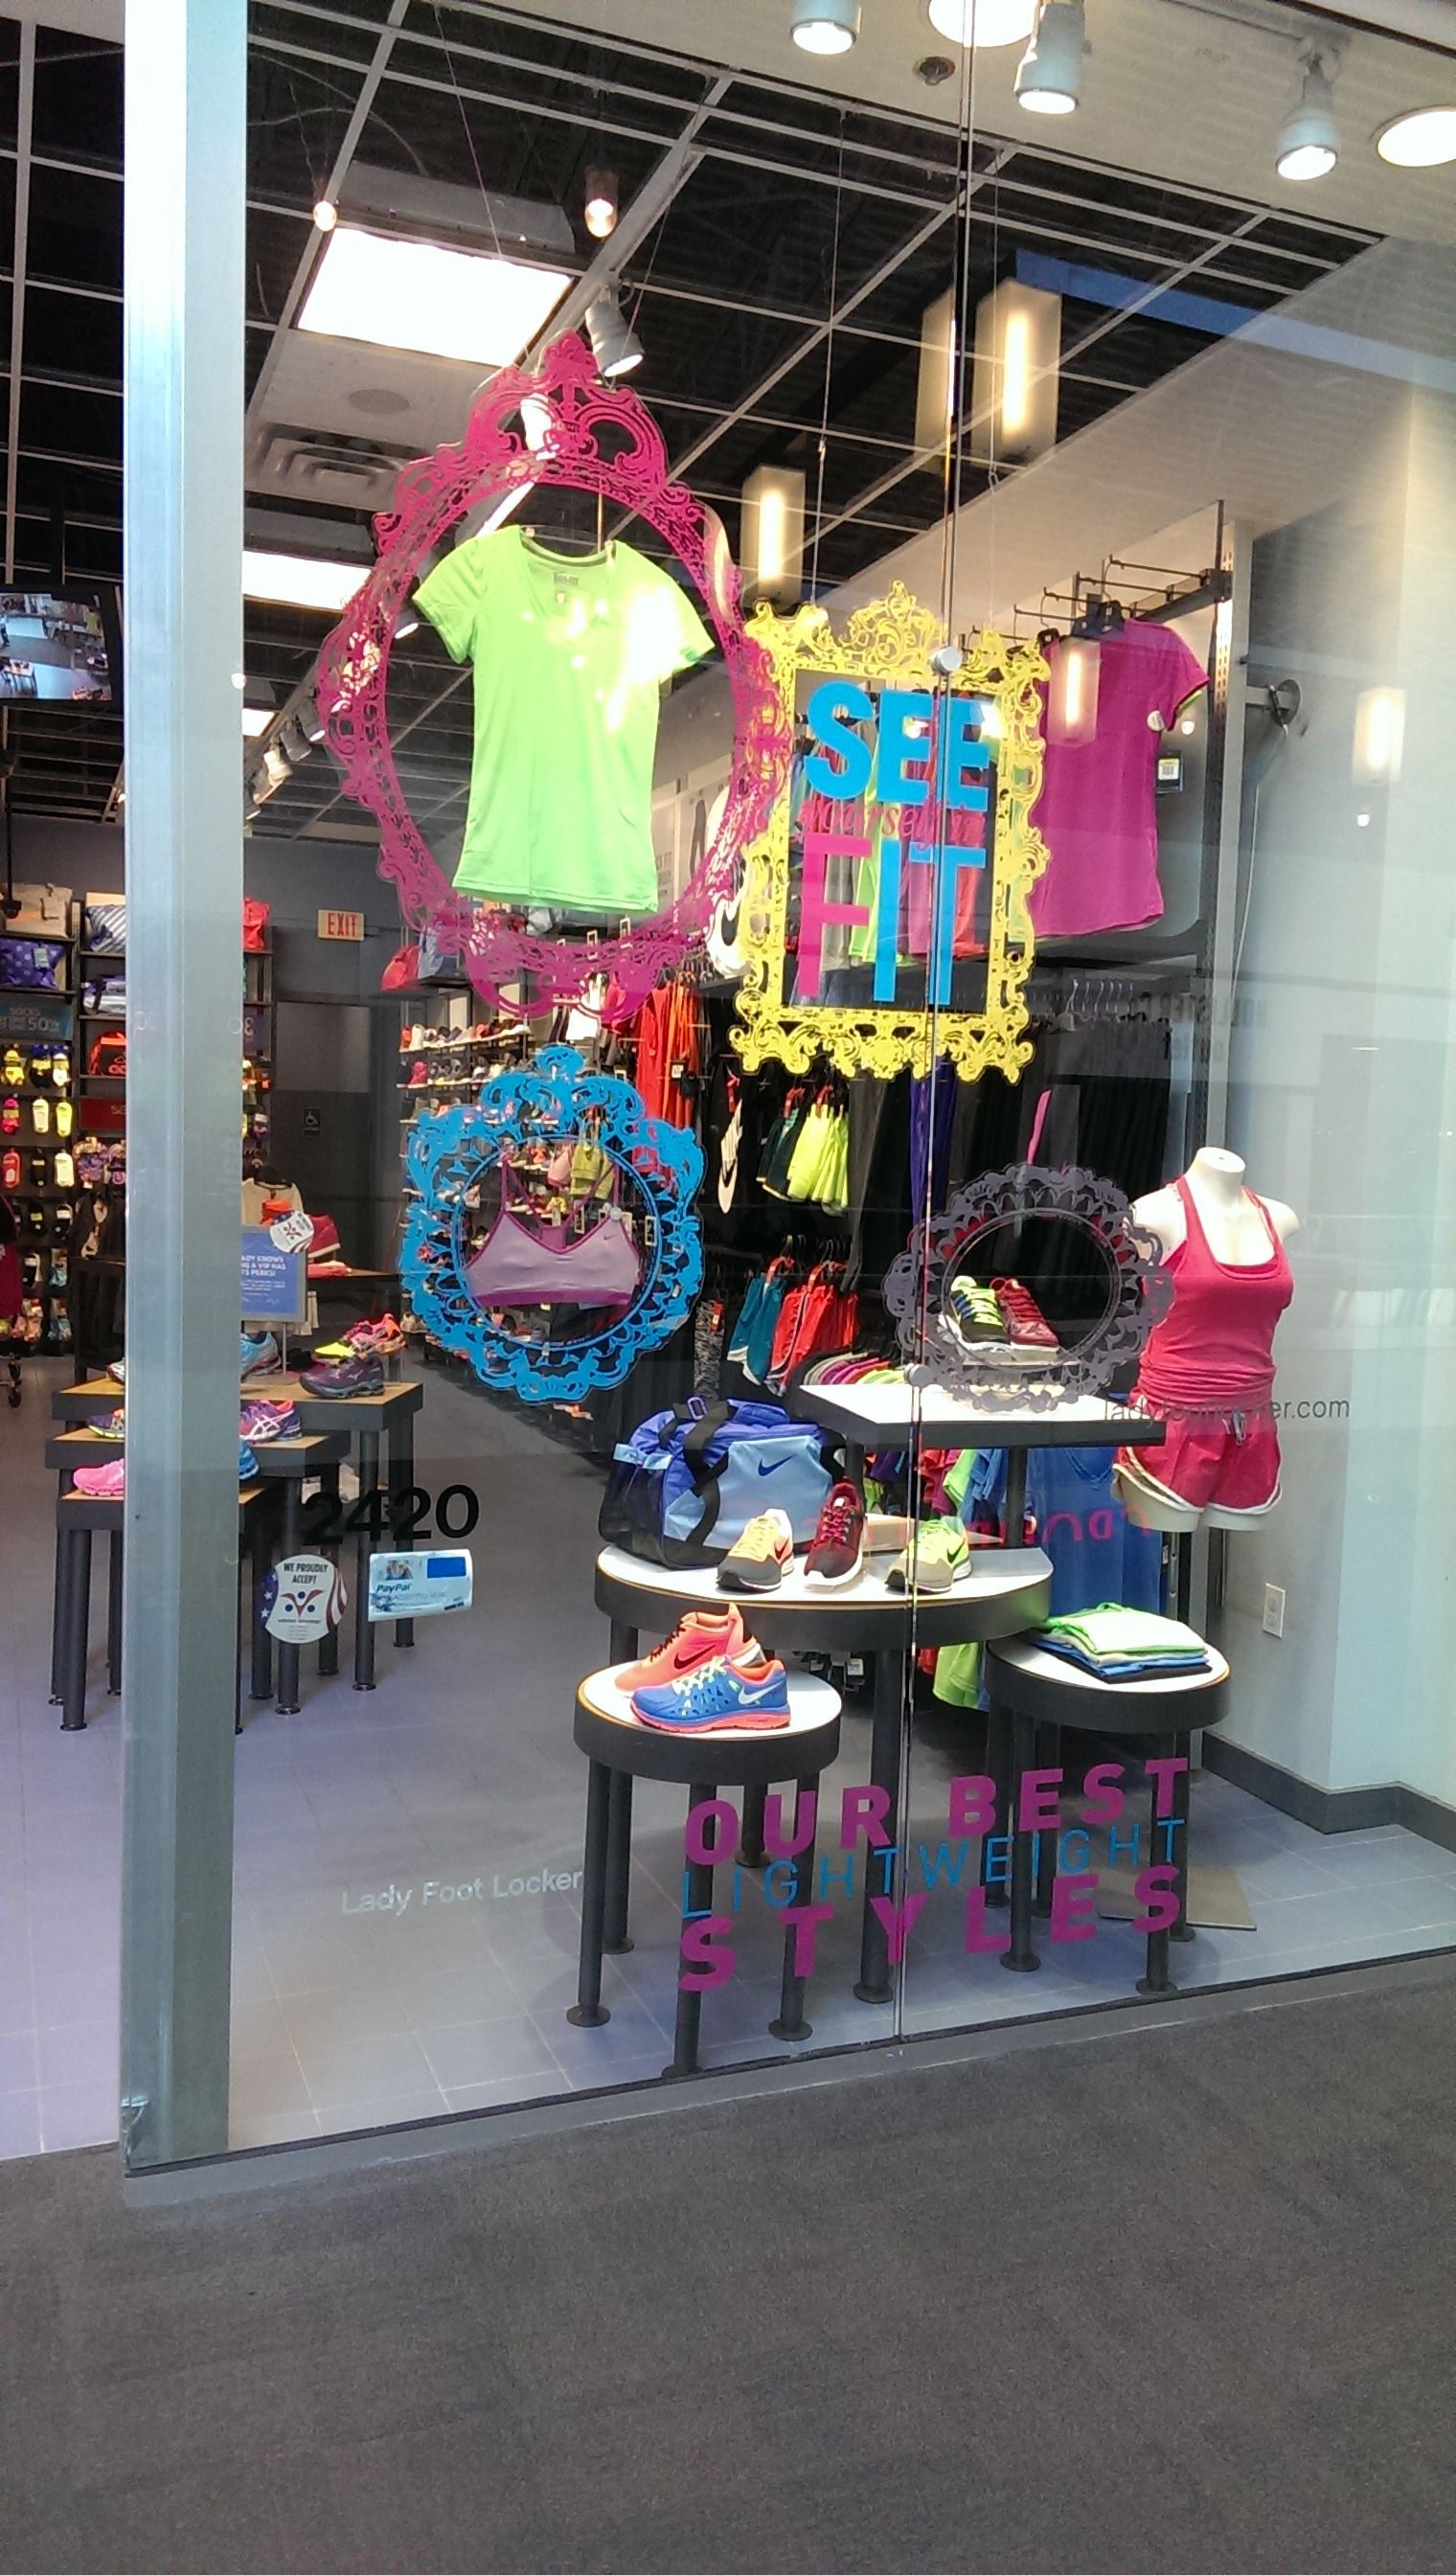 c79d8e9fc Lady Foot Locker shows off their best lightweight running styles in their  window! Snag all of your favorite running apparel here!